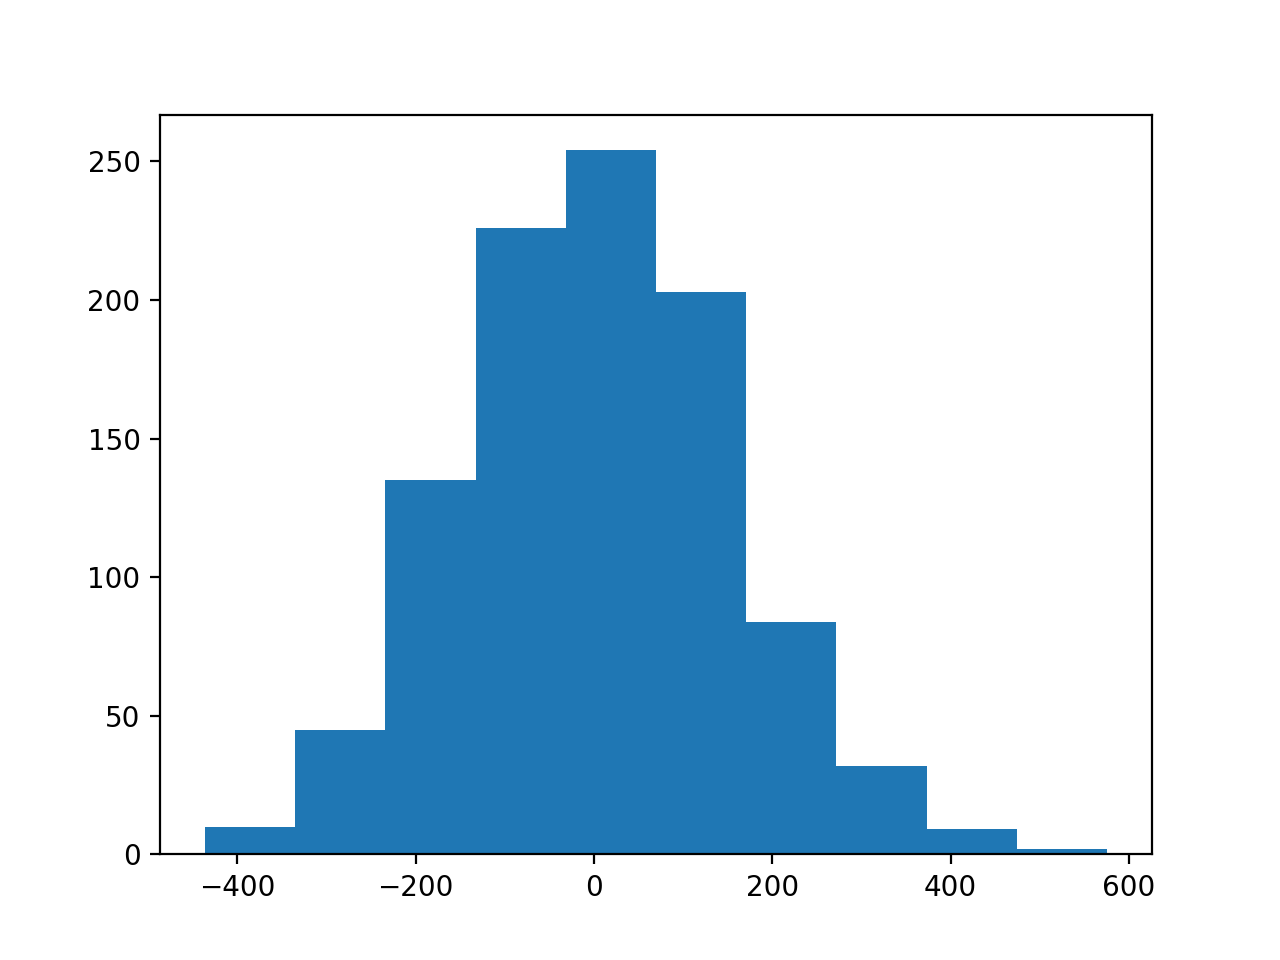 Histogram of the Target Variable for the Regression Problem